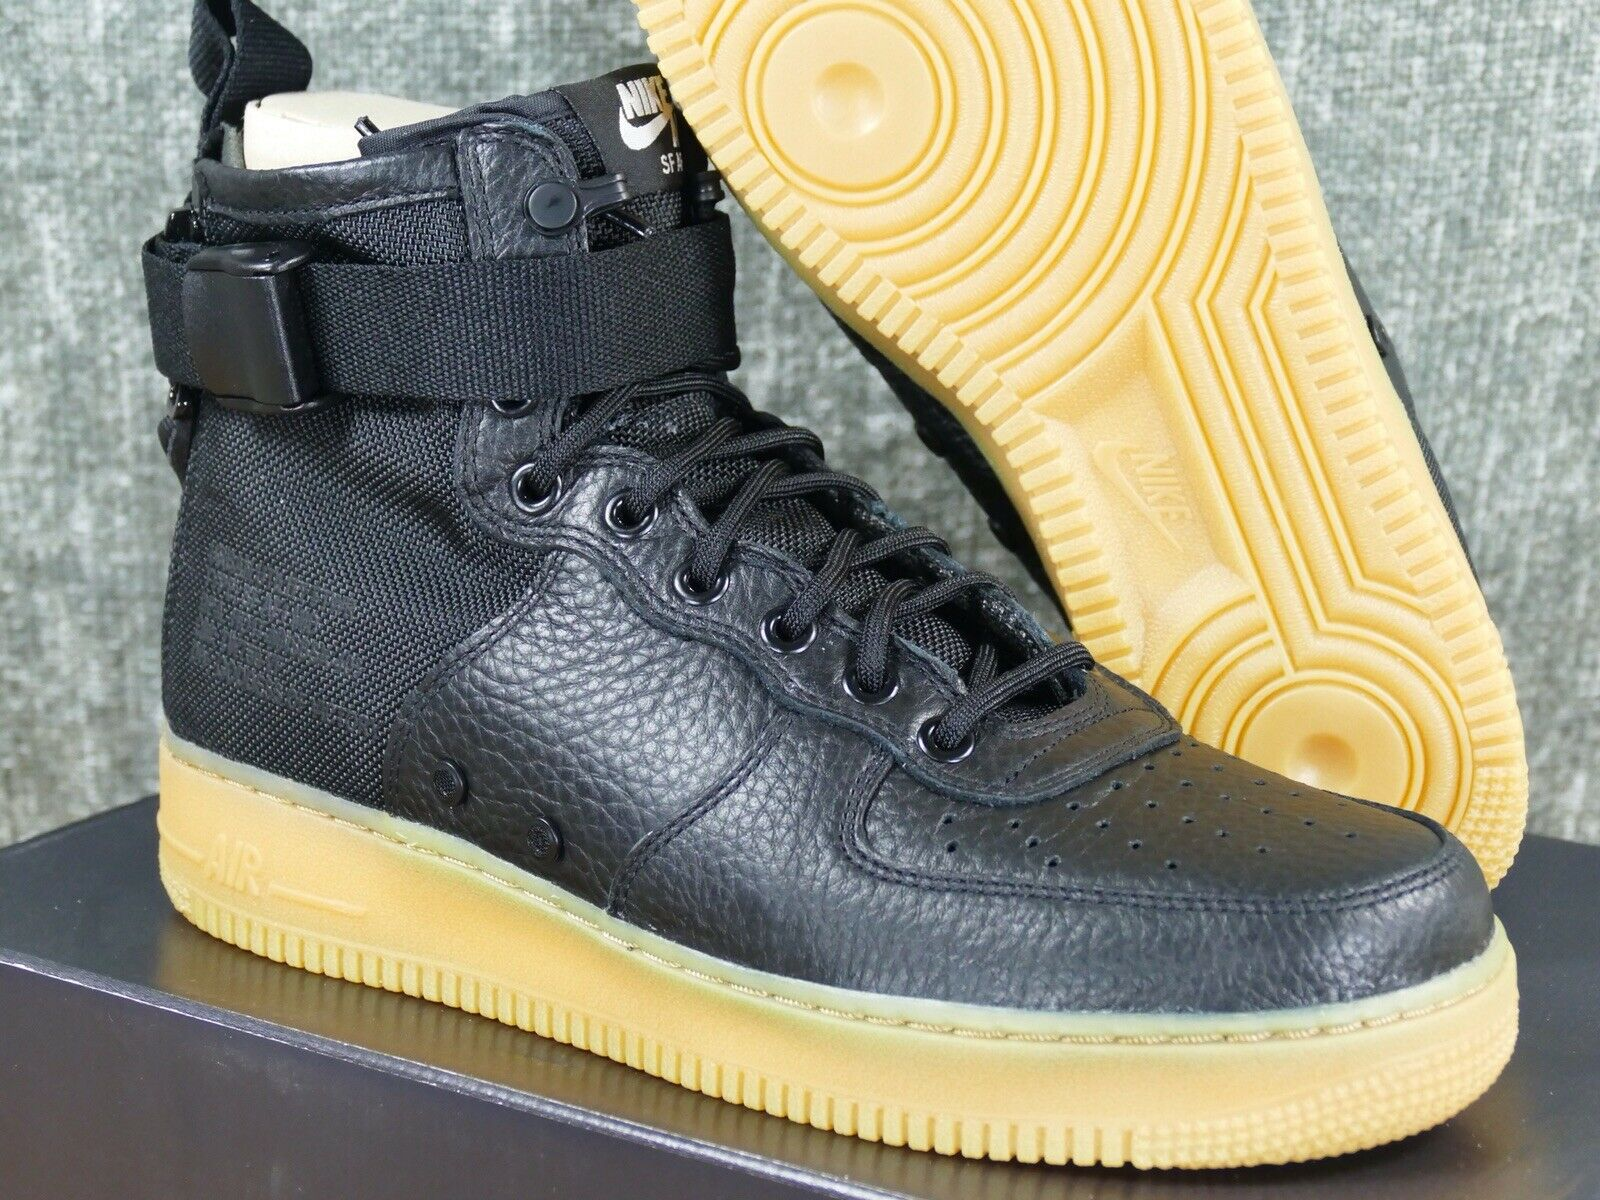 Nike Special Field Air Force 1 Mid Sz 9 black gum - sf af1 boot 2017 917753-003